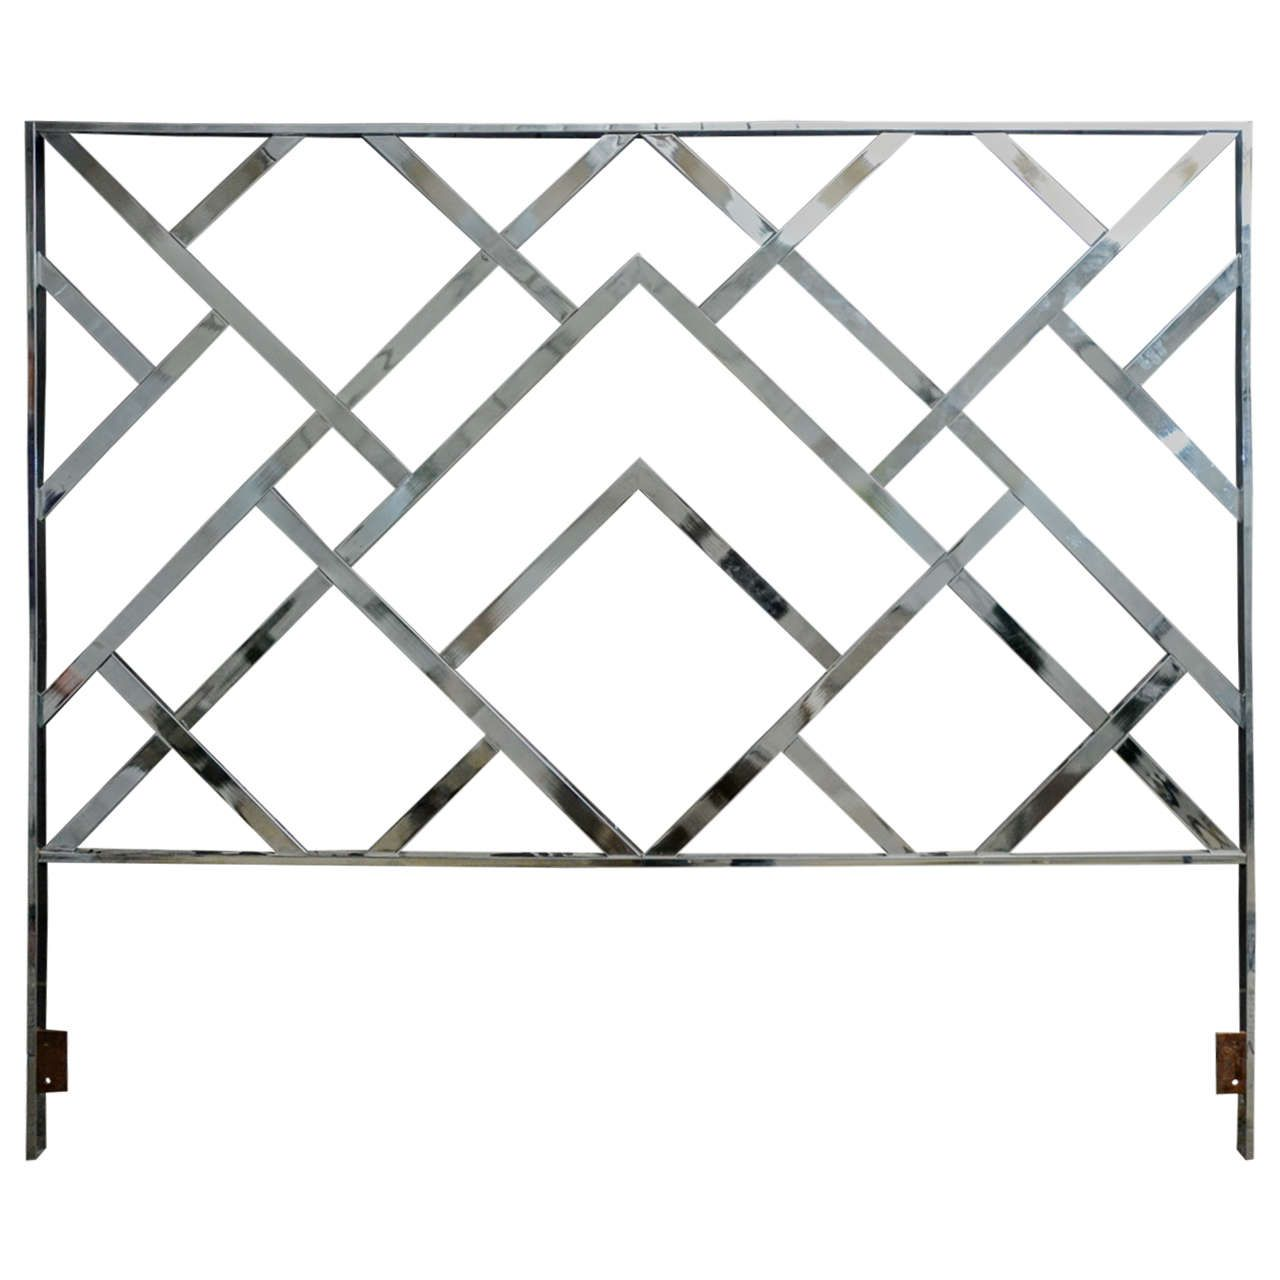 Unusual Vintage Lattice King Size Headboard By Milo Baughman From A Unique Collection Of Antique And Moder Headboard Lattice Headboard Dimensional Wall Decor